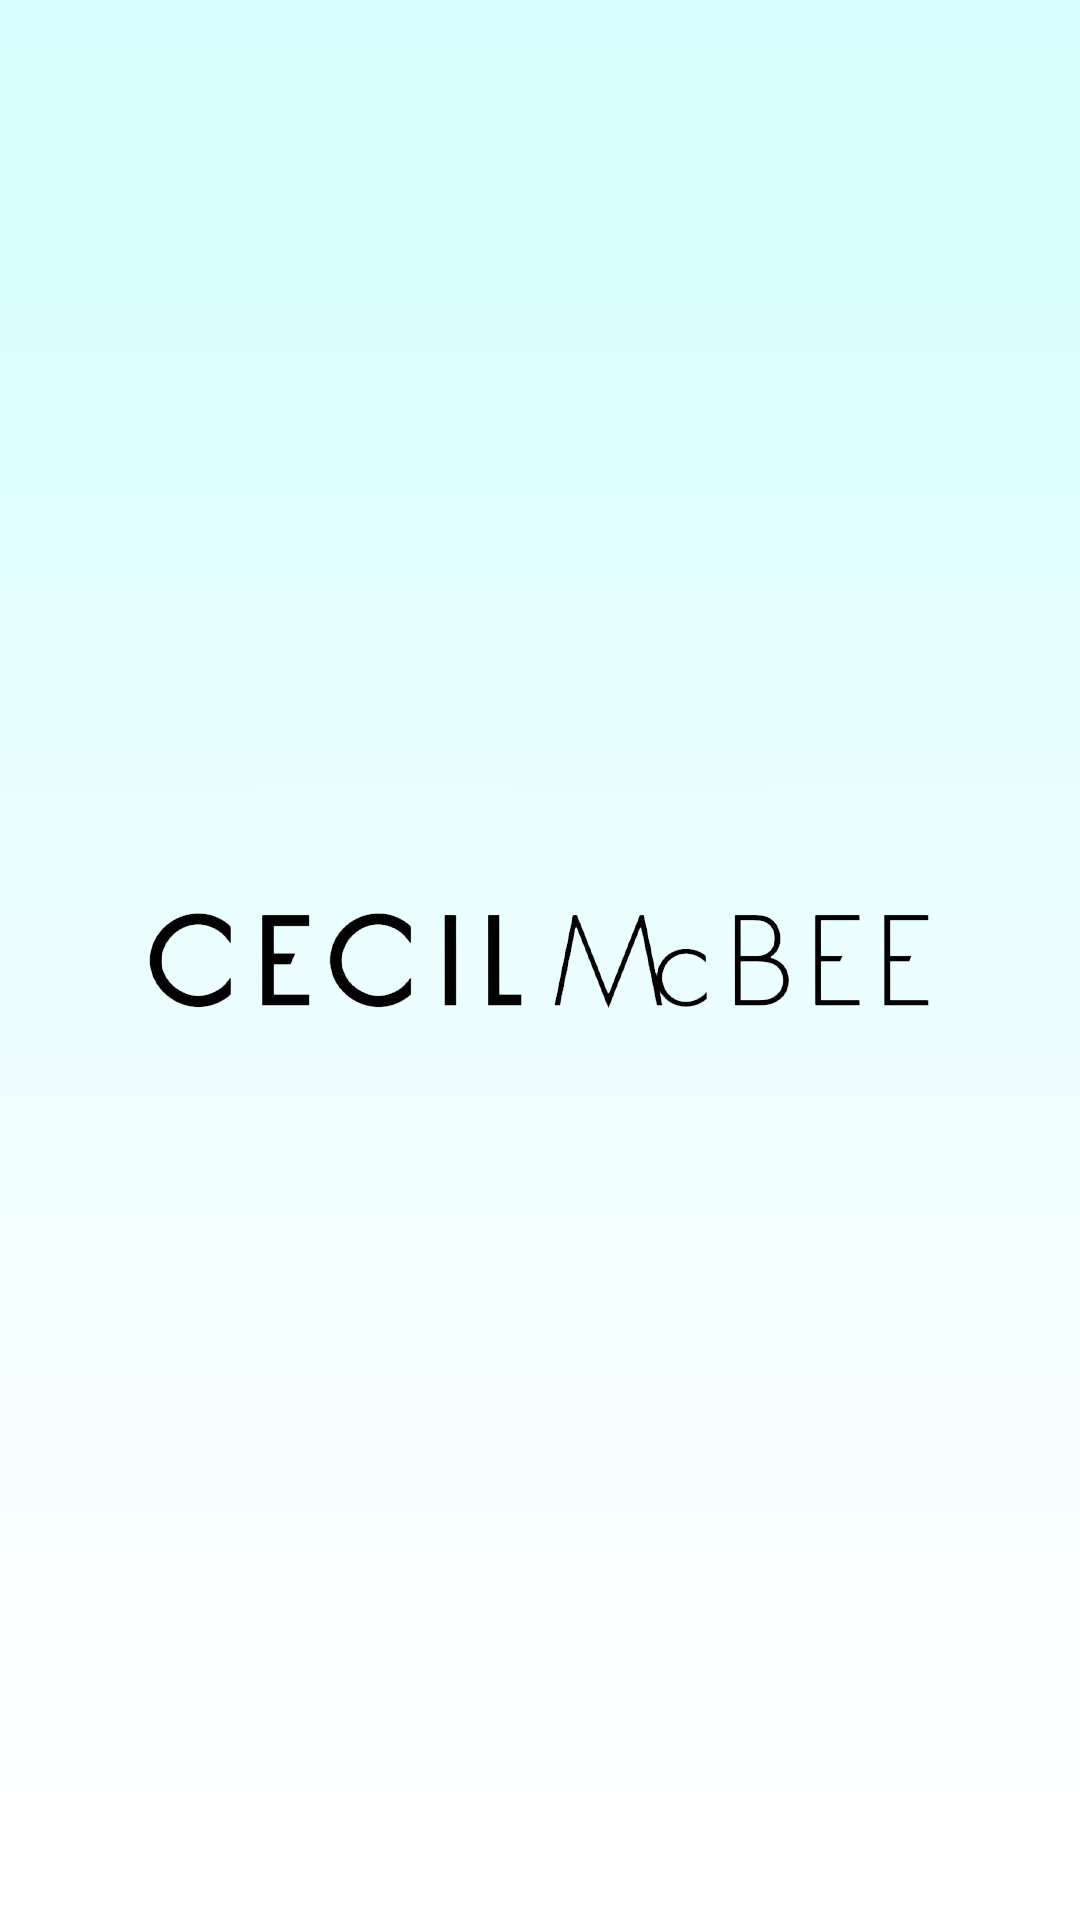 cecil00015 - セシルマクビー[CECIL McBEE]の高画質スマホ壁紙23枚 [iPhone&Androidに対応]